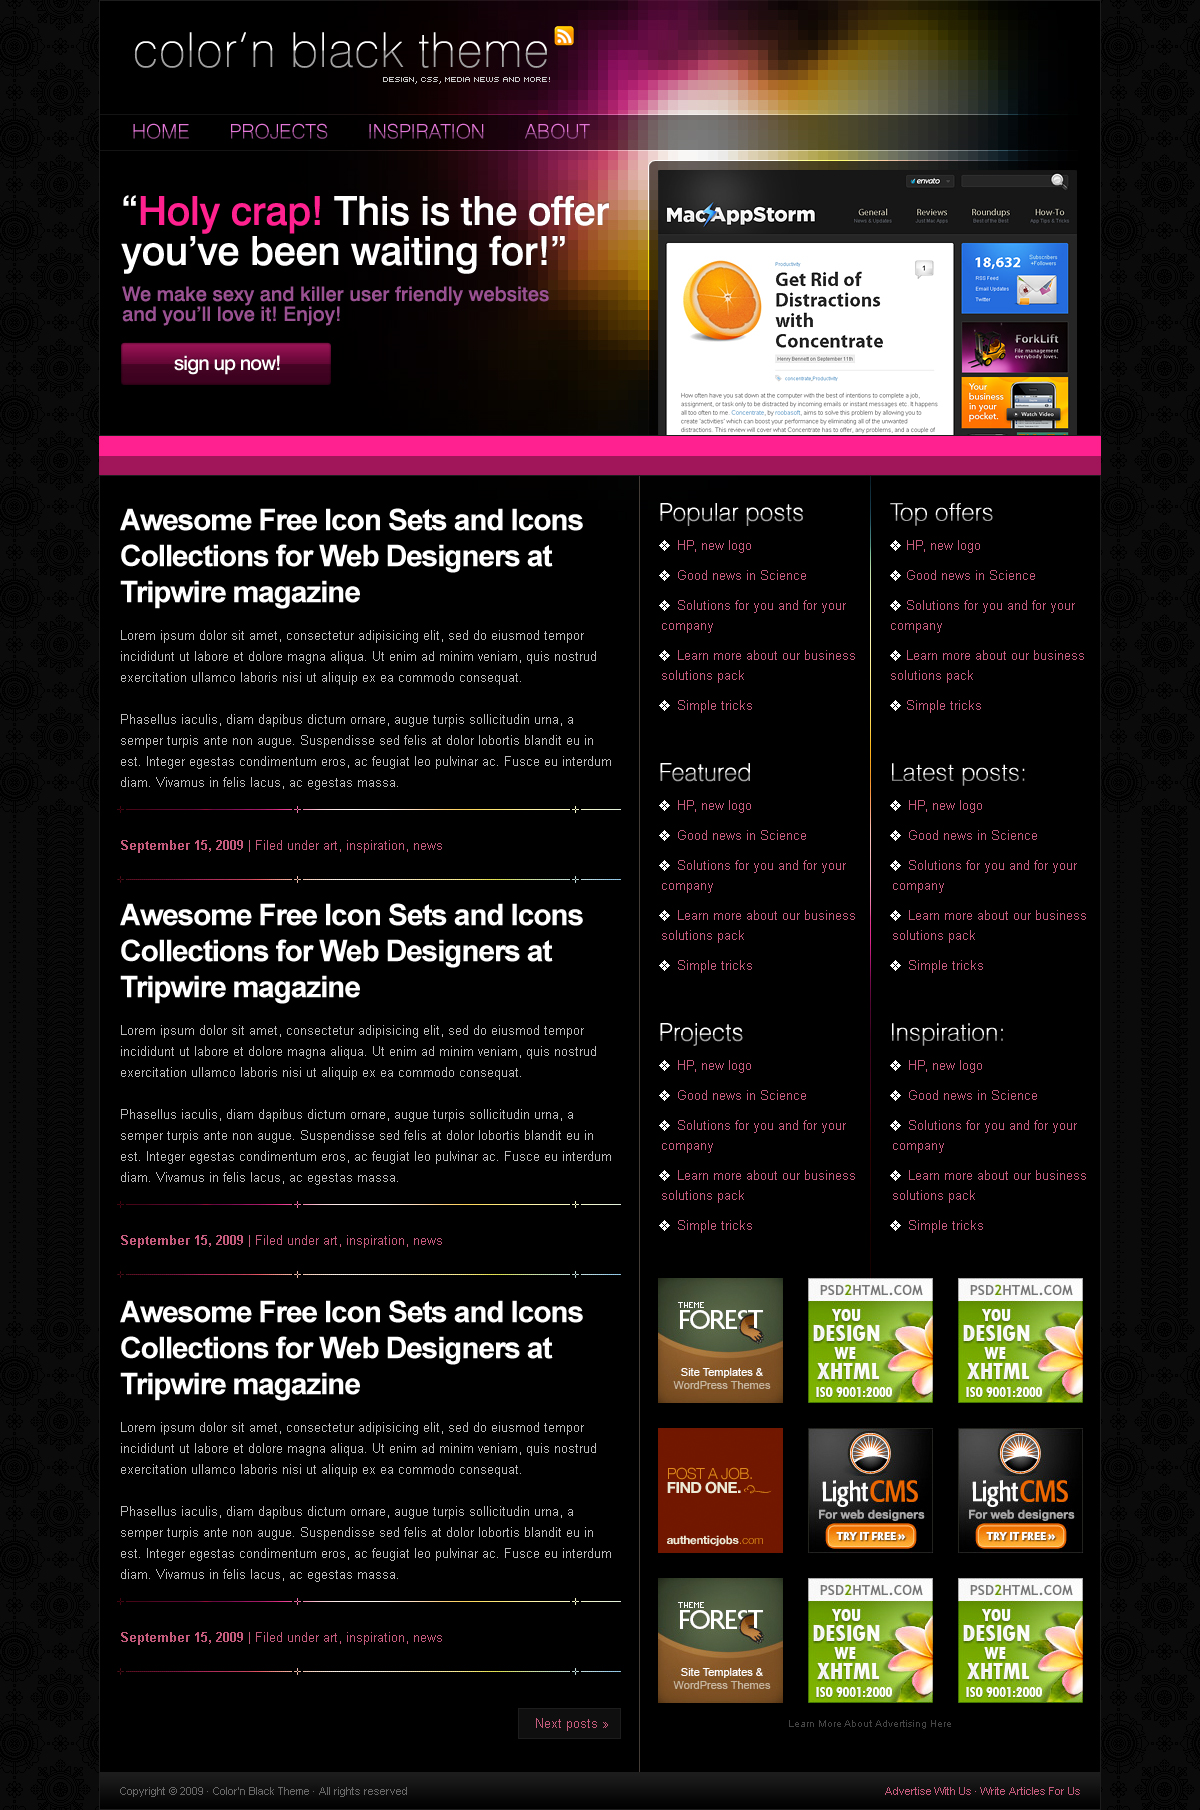 Color'n Black theme - Homepage : Big promo area to impact your user and posts for more info